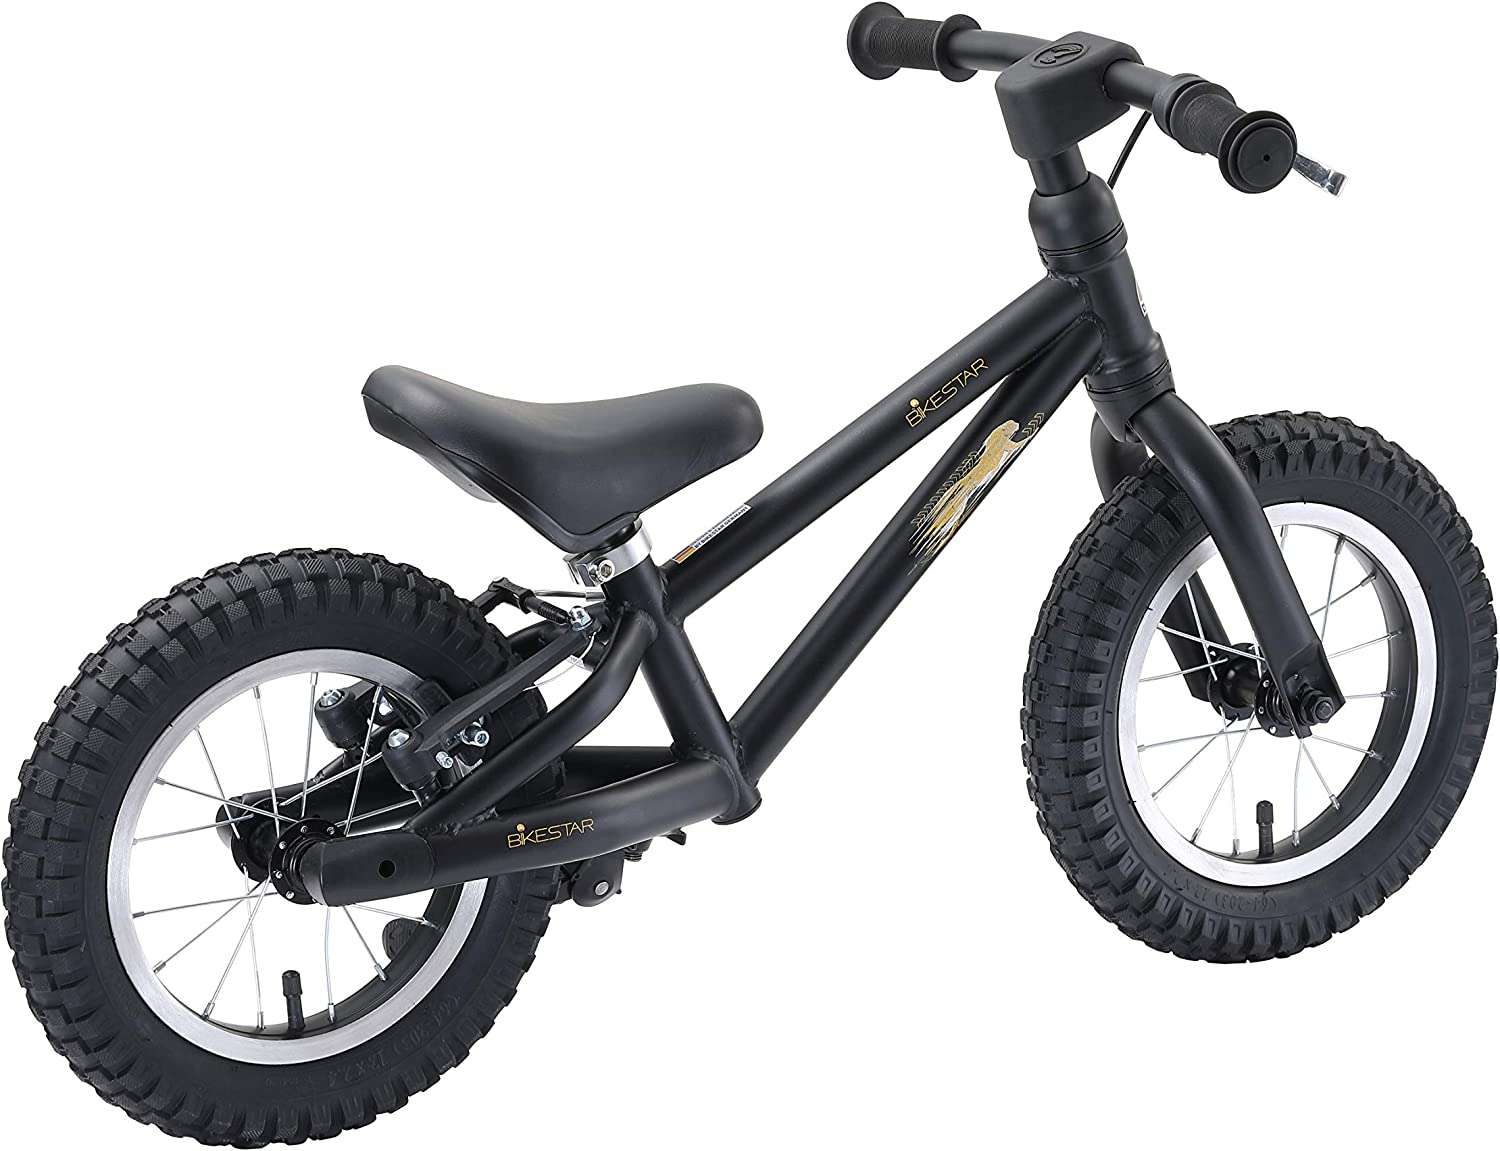 12 Inch Mountain Edition BIKESTAR Kids First Running Balance Bike with brakes and with air tires for Kids age 3 year old boys girls